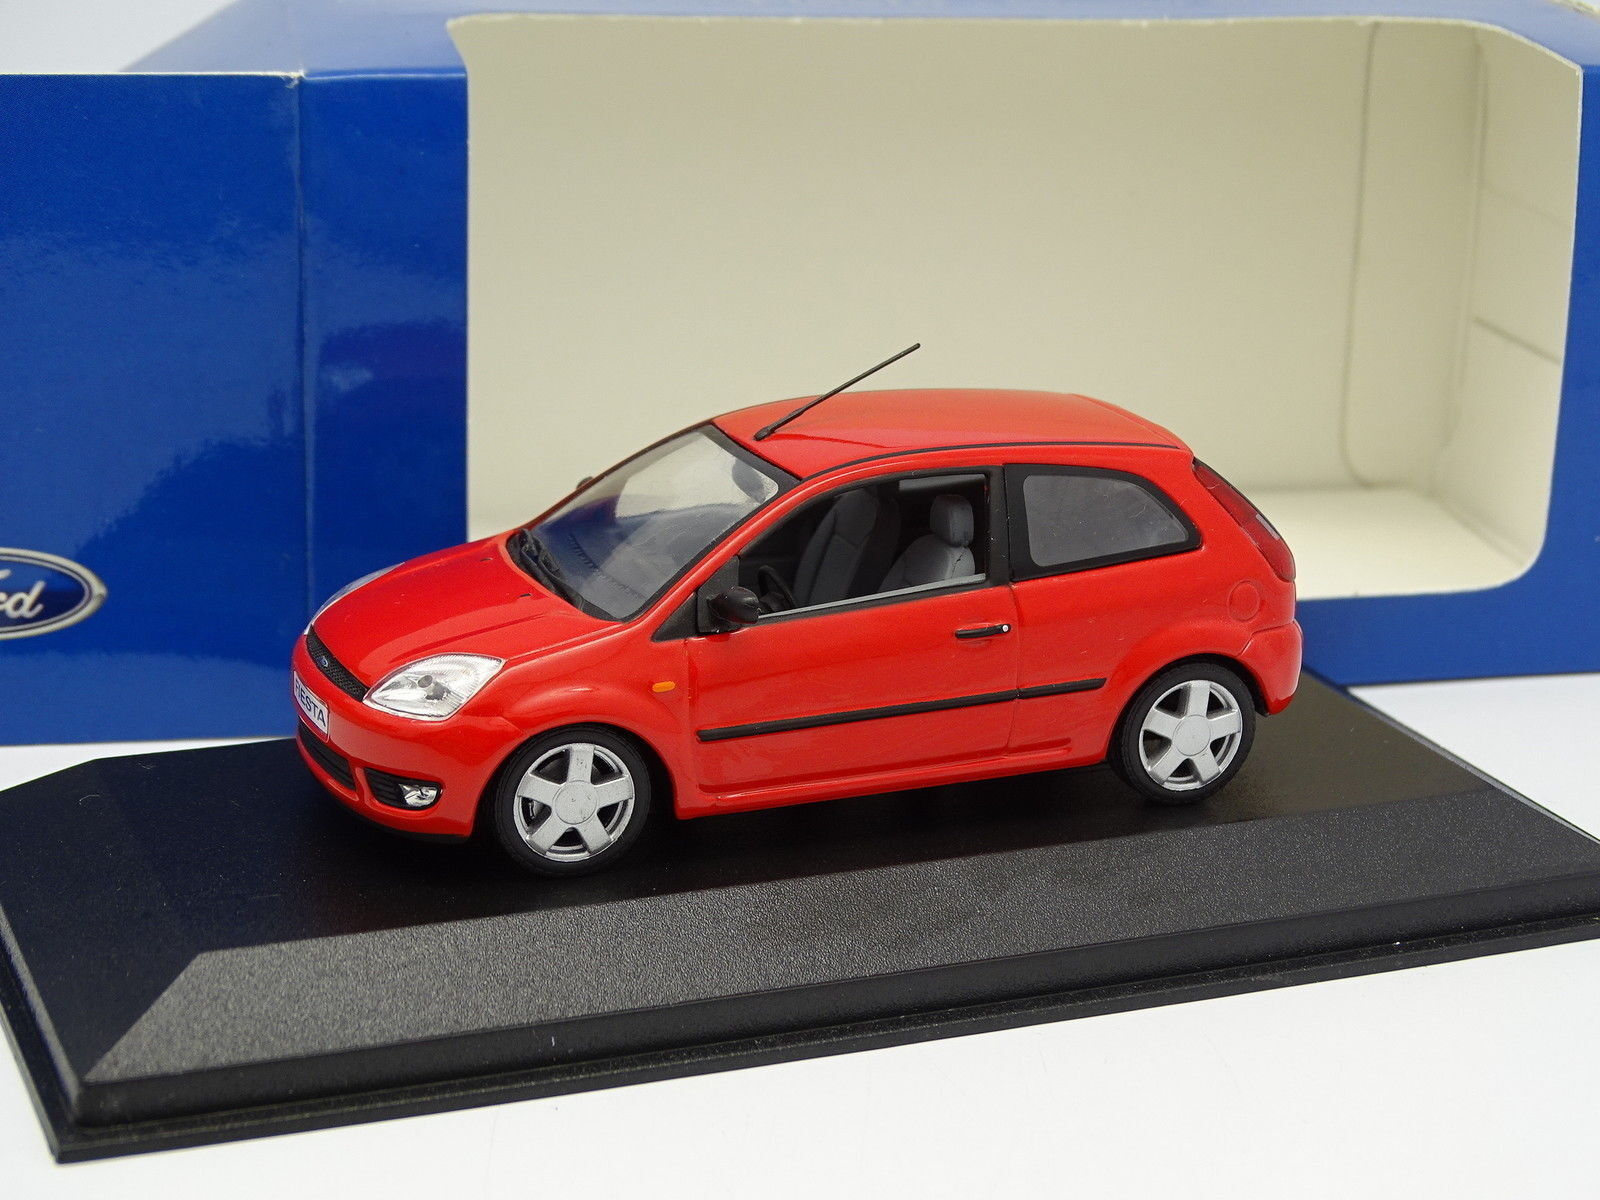 Minichamps 1 43 - Ford Fiesta 3 doors red